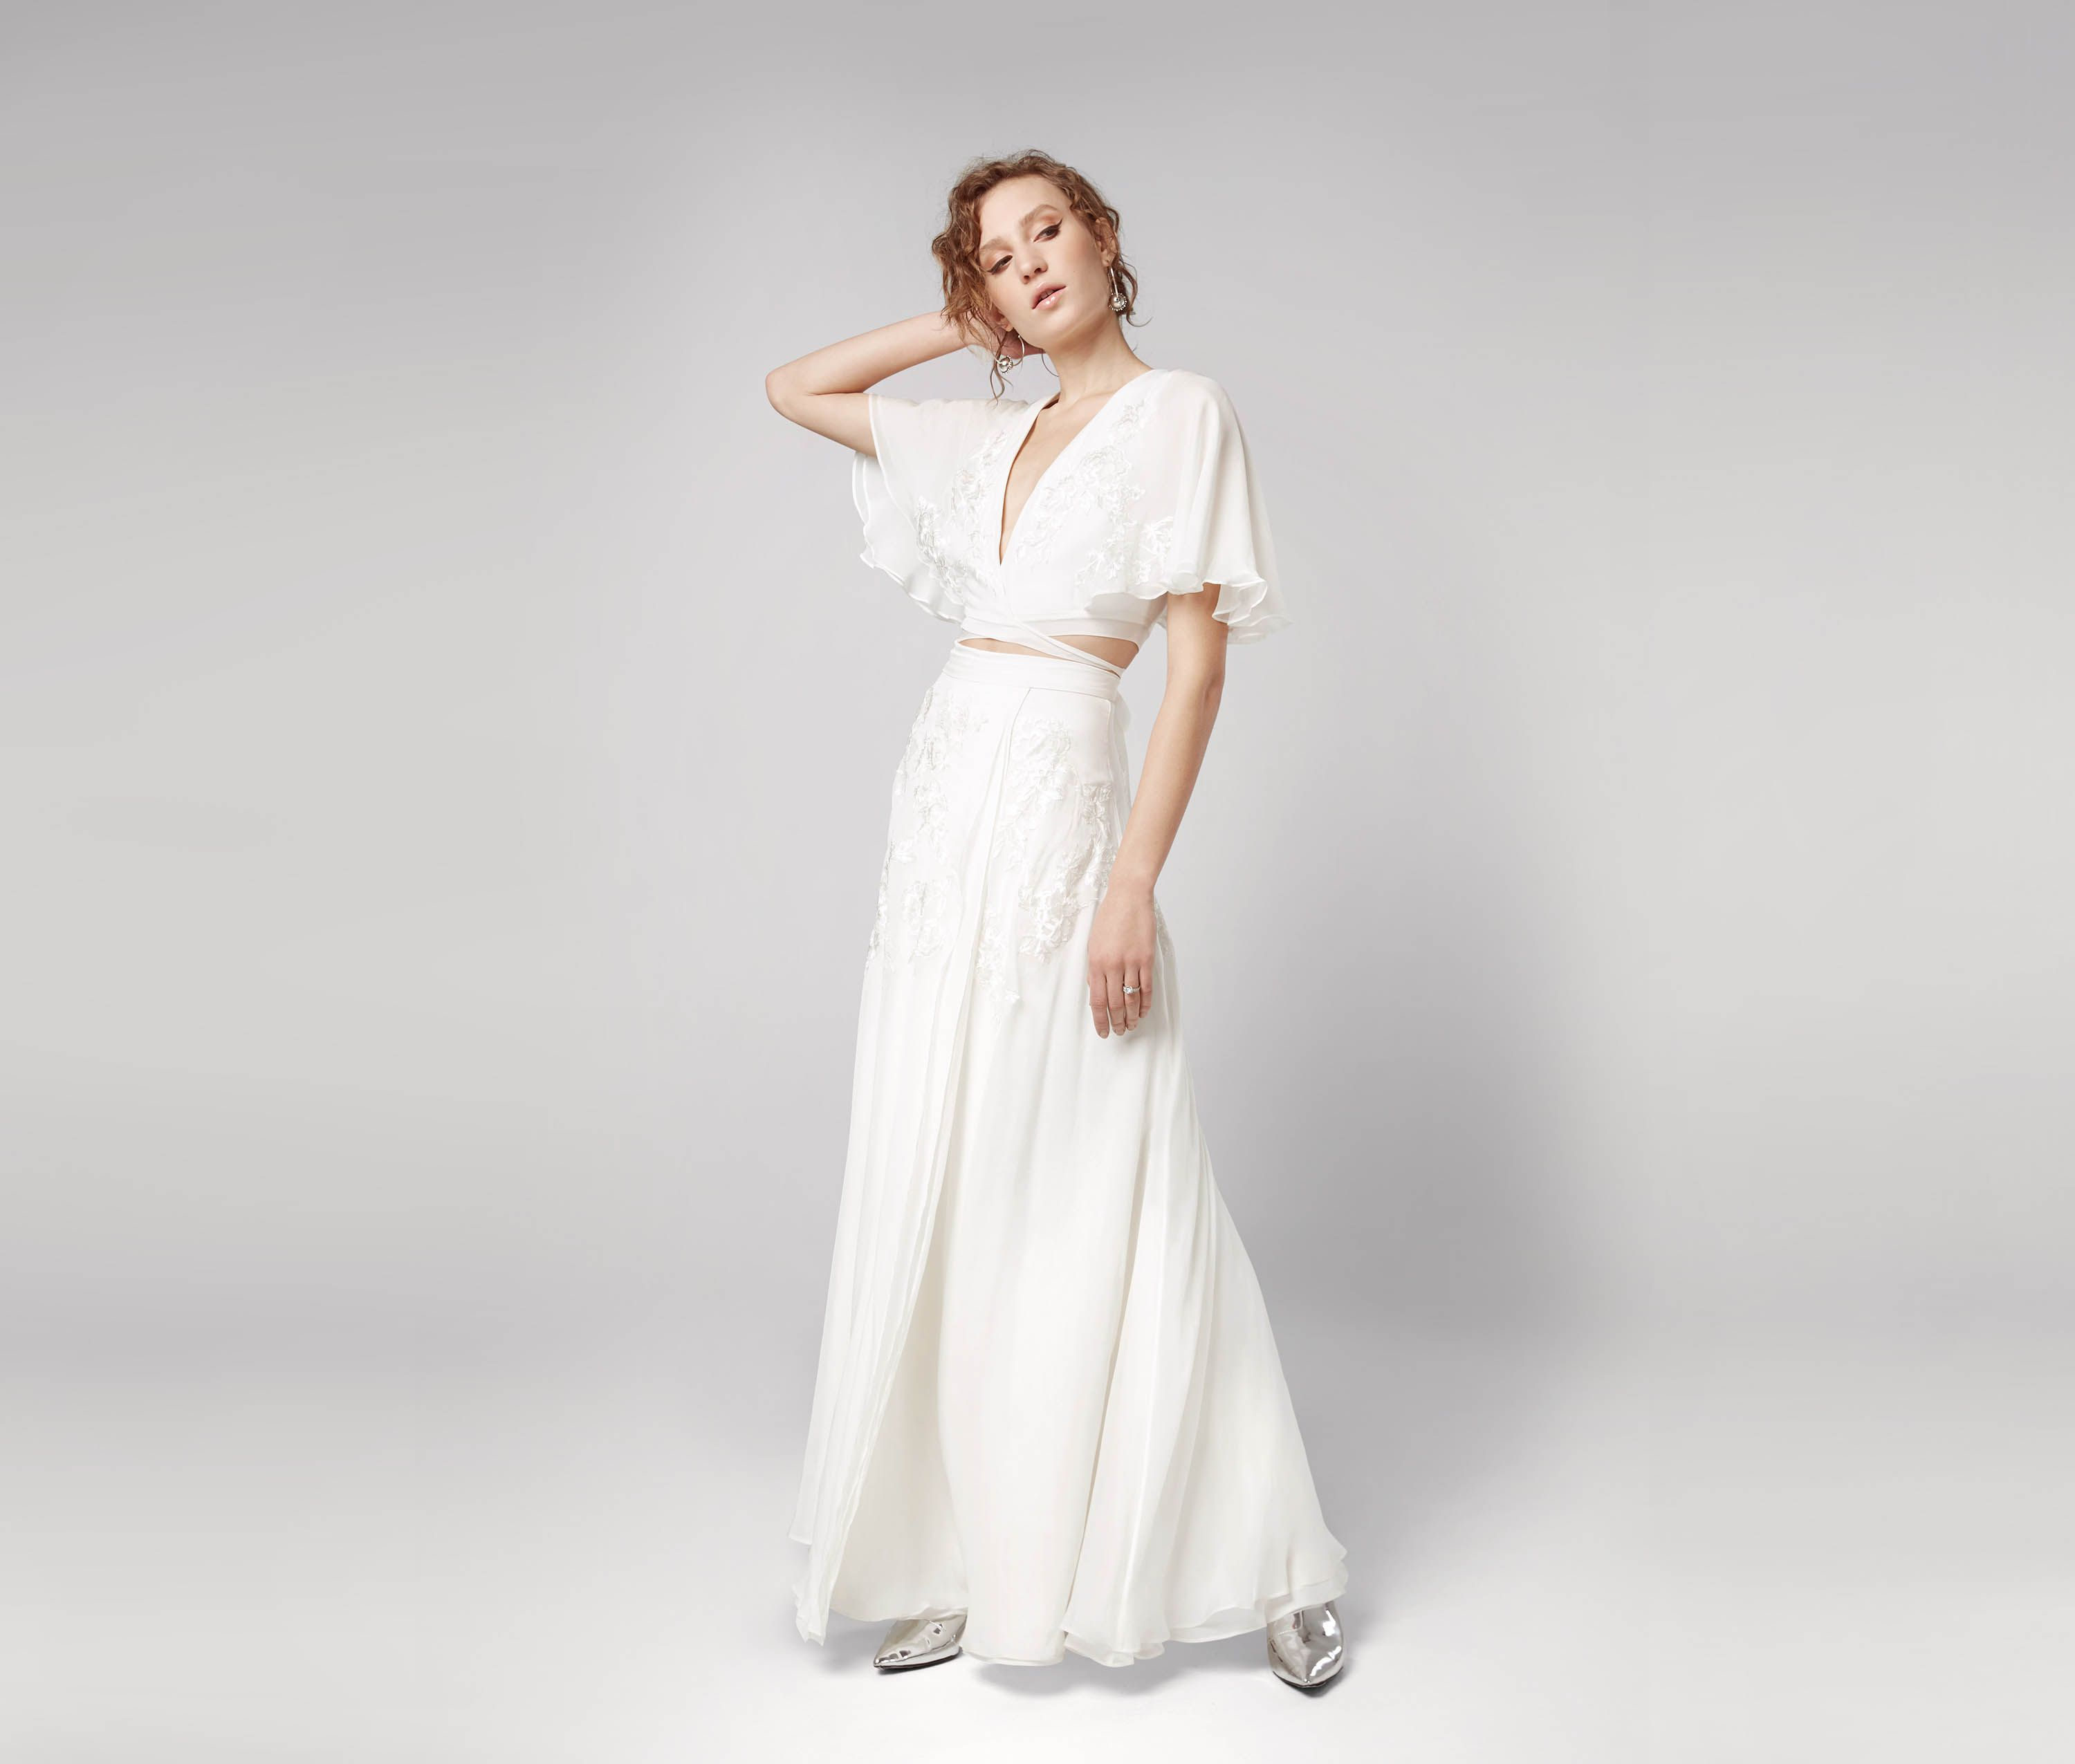 No Fuss No Stress Brides The Sylvie Is For You A Wrap Top With Wide Flowing Sleeves And Casual Wedding Dress Boho Style Wedding Dress Wedding Dress Outlet